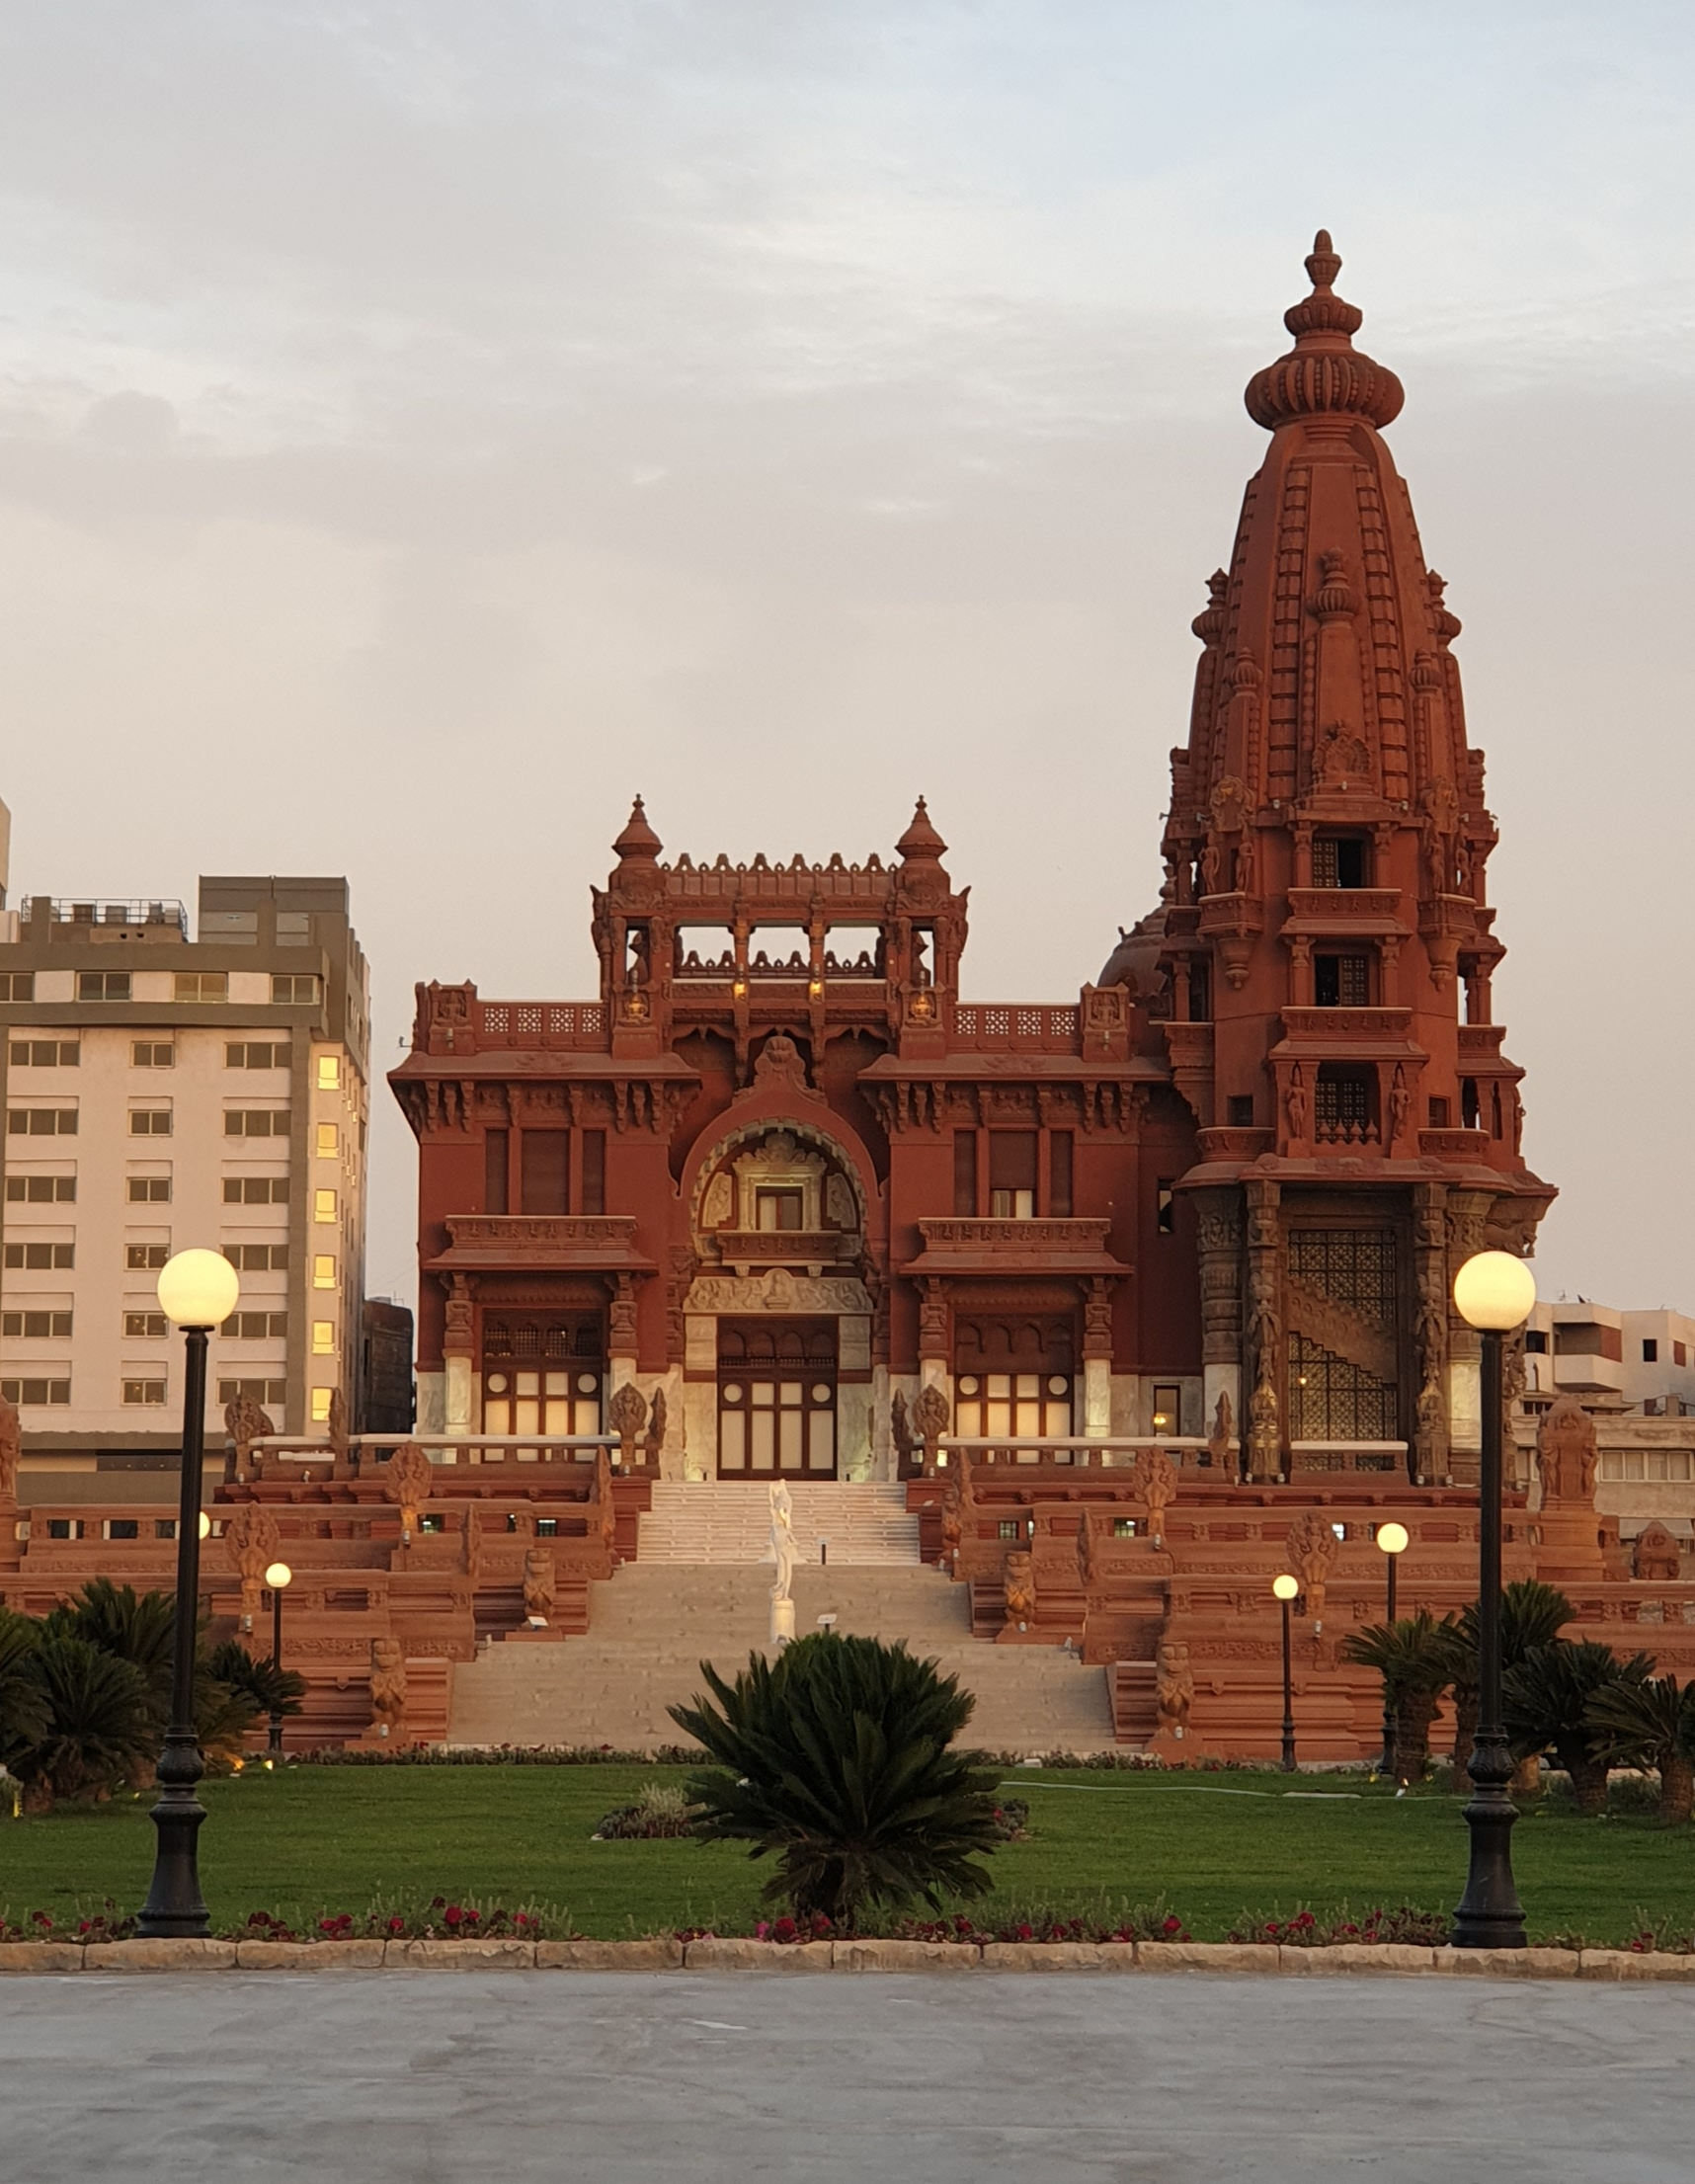 The_exterior_of_the_Baron_Empain_palace